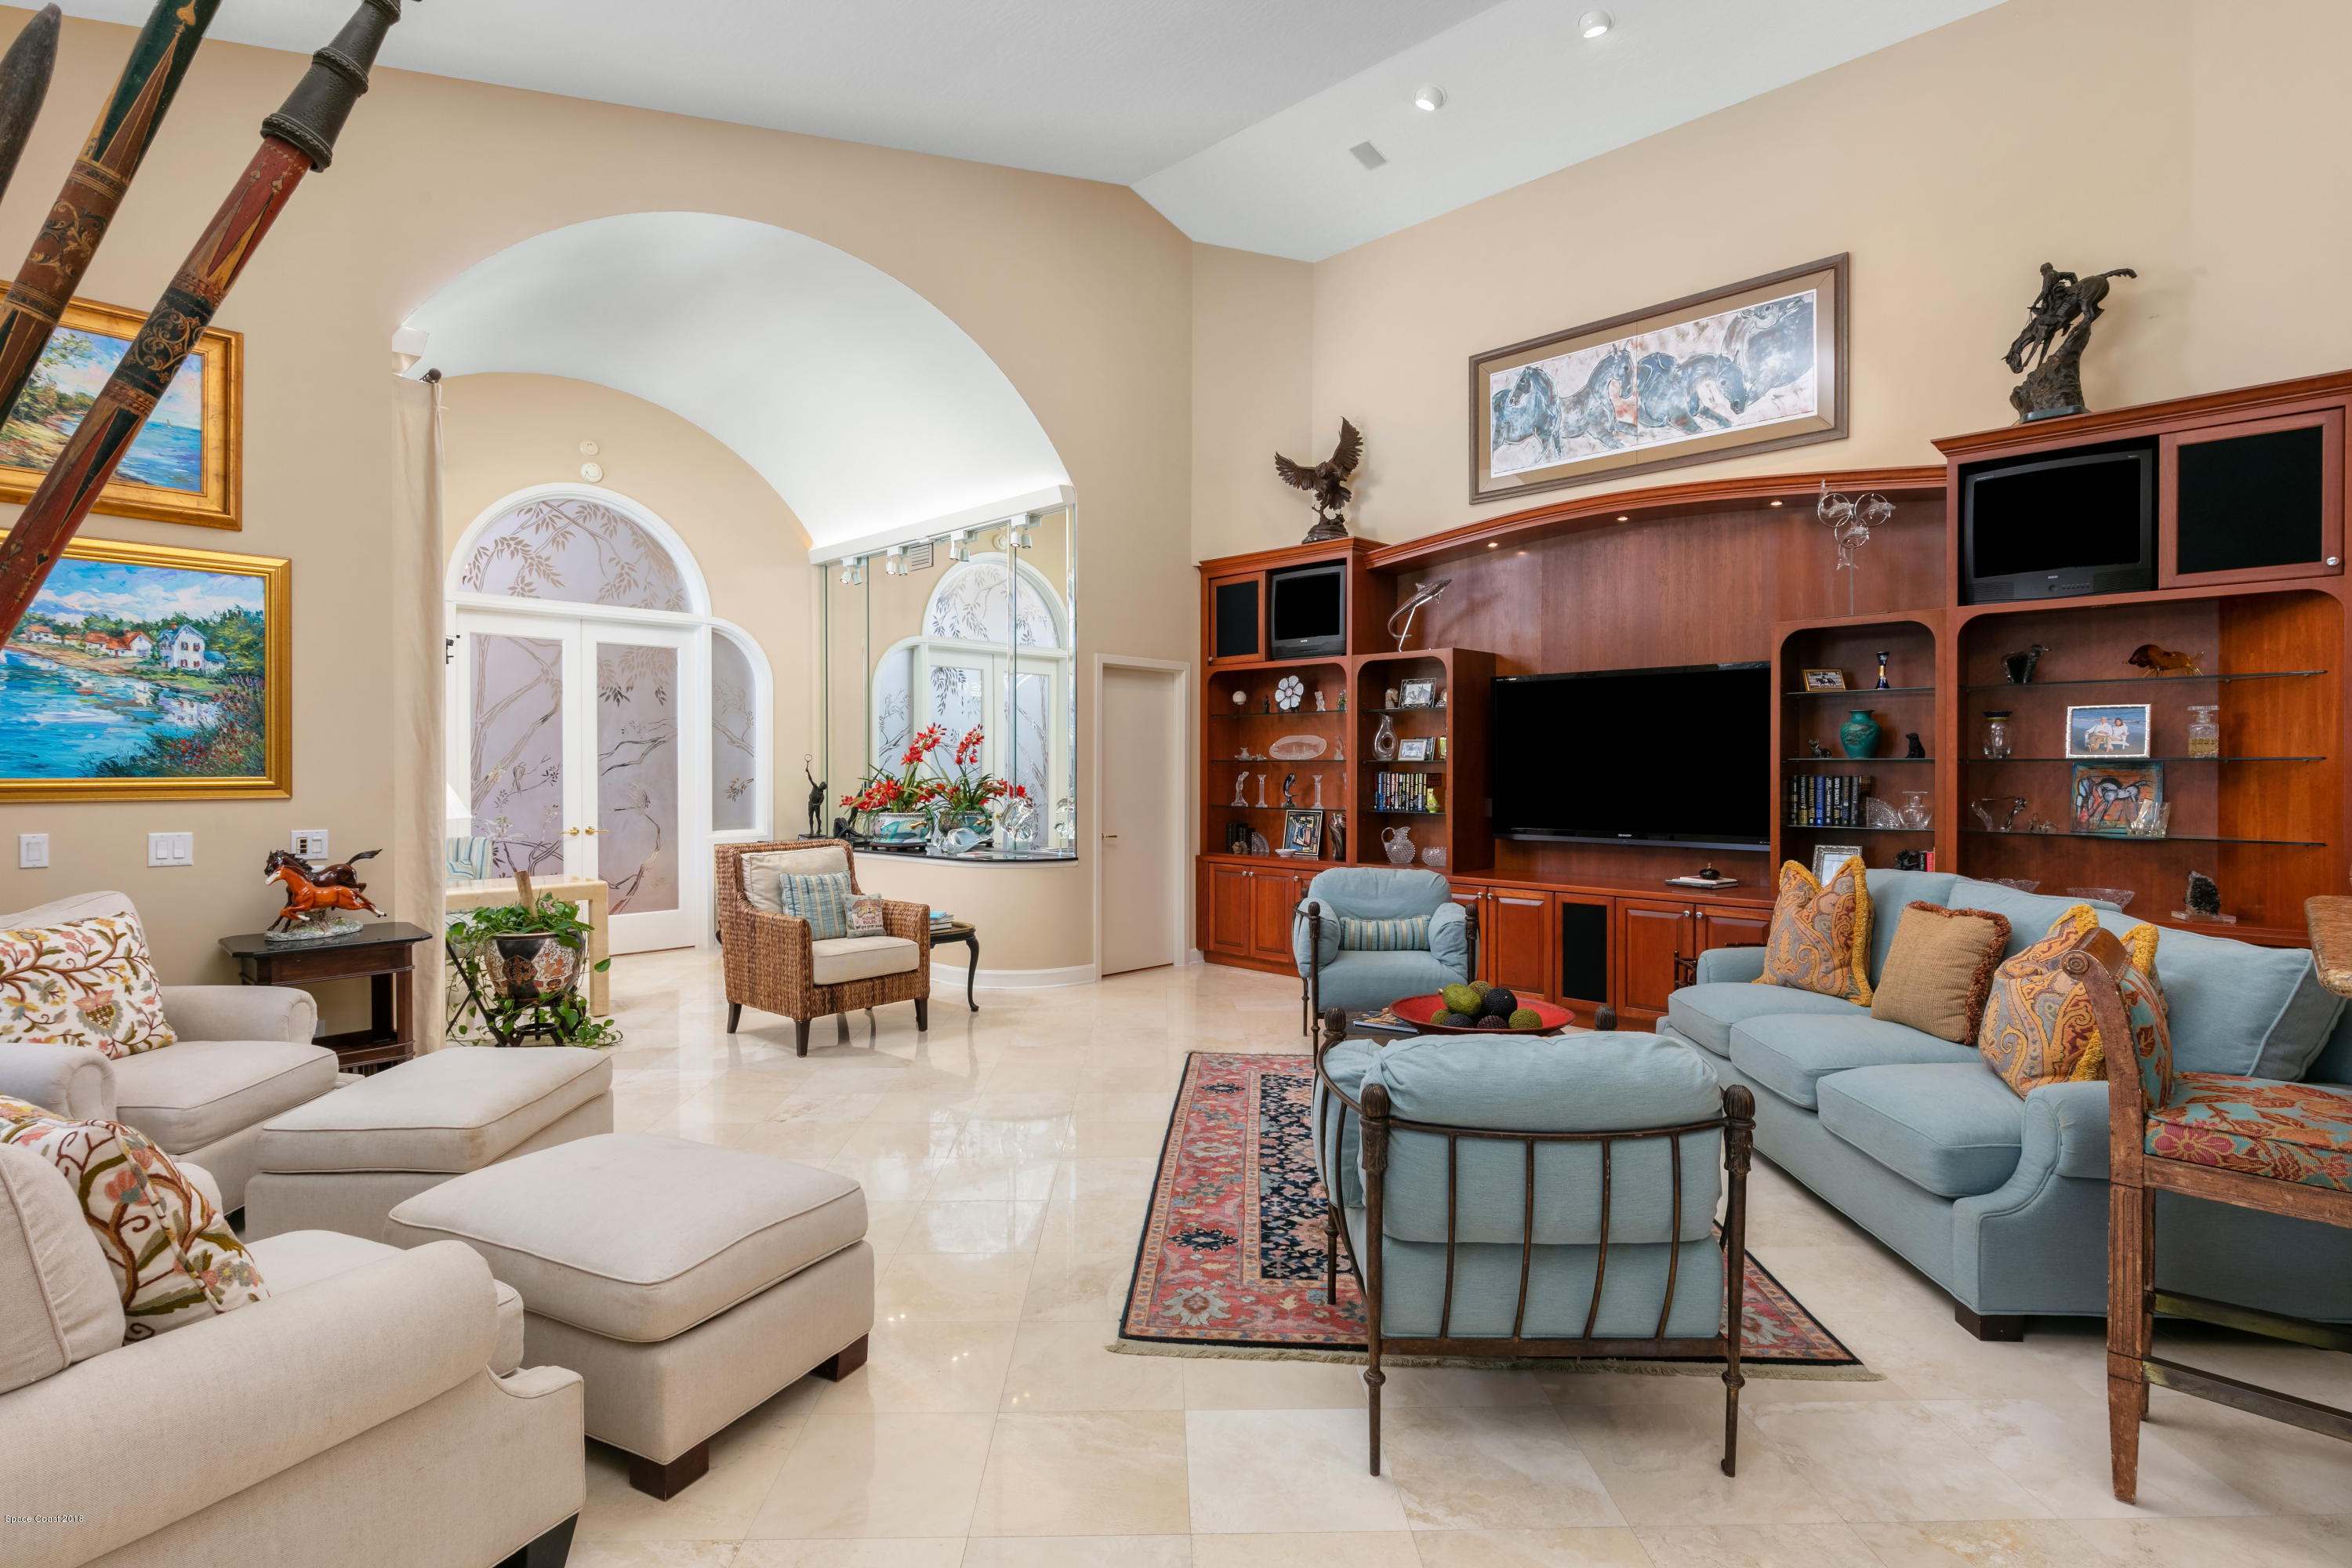 Additional photo for property listing at 3970 Parkway 3970 Parkway Melbourne, Florida 32934 United States